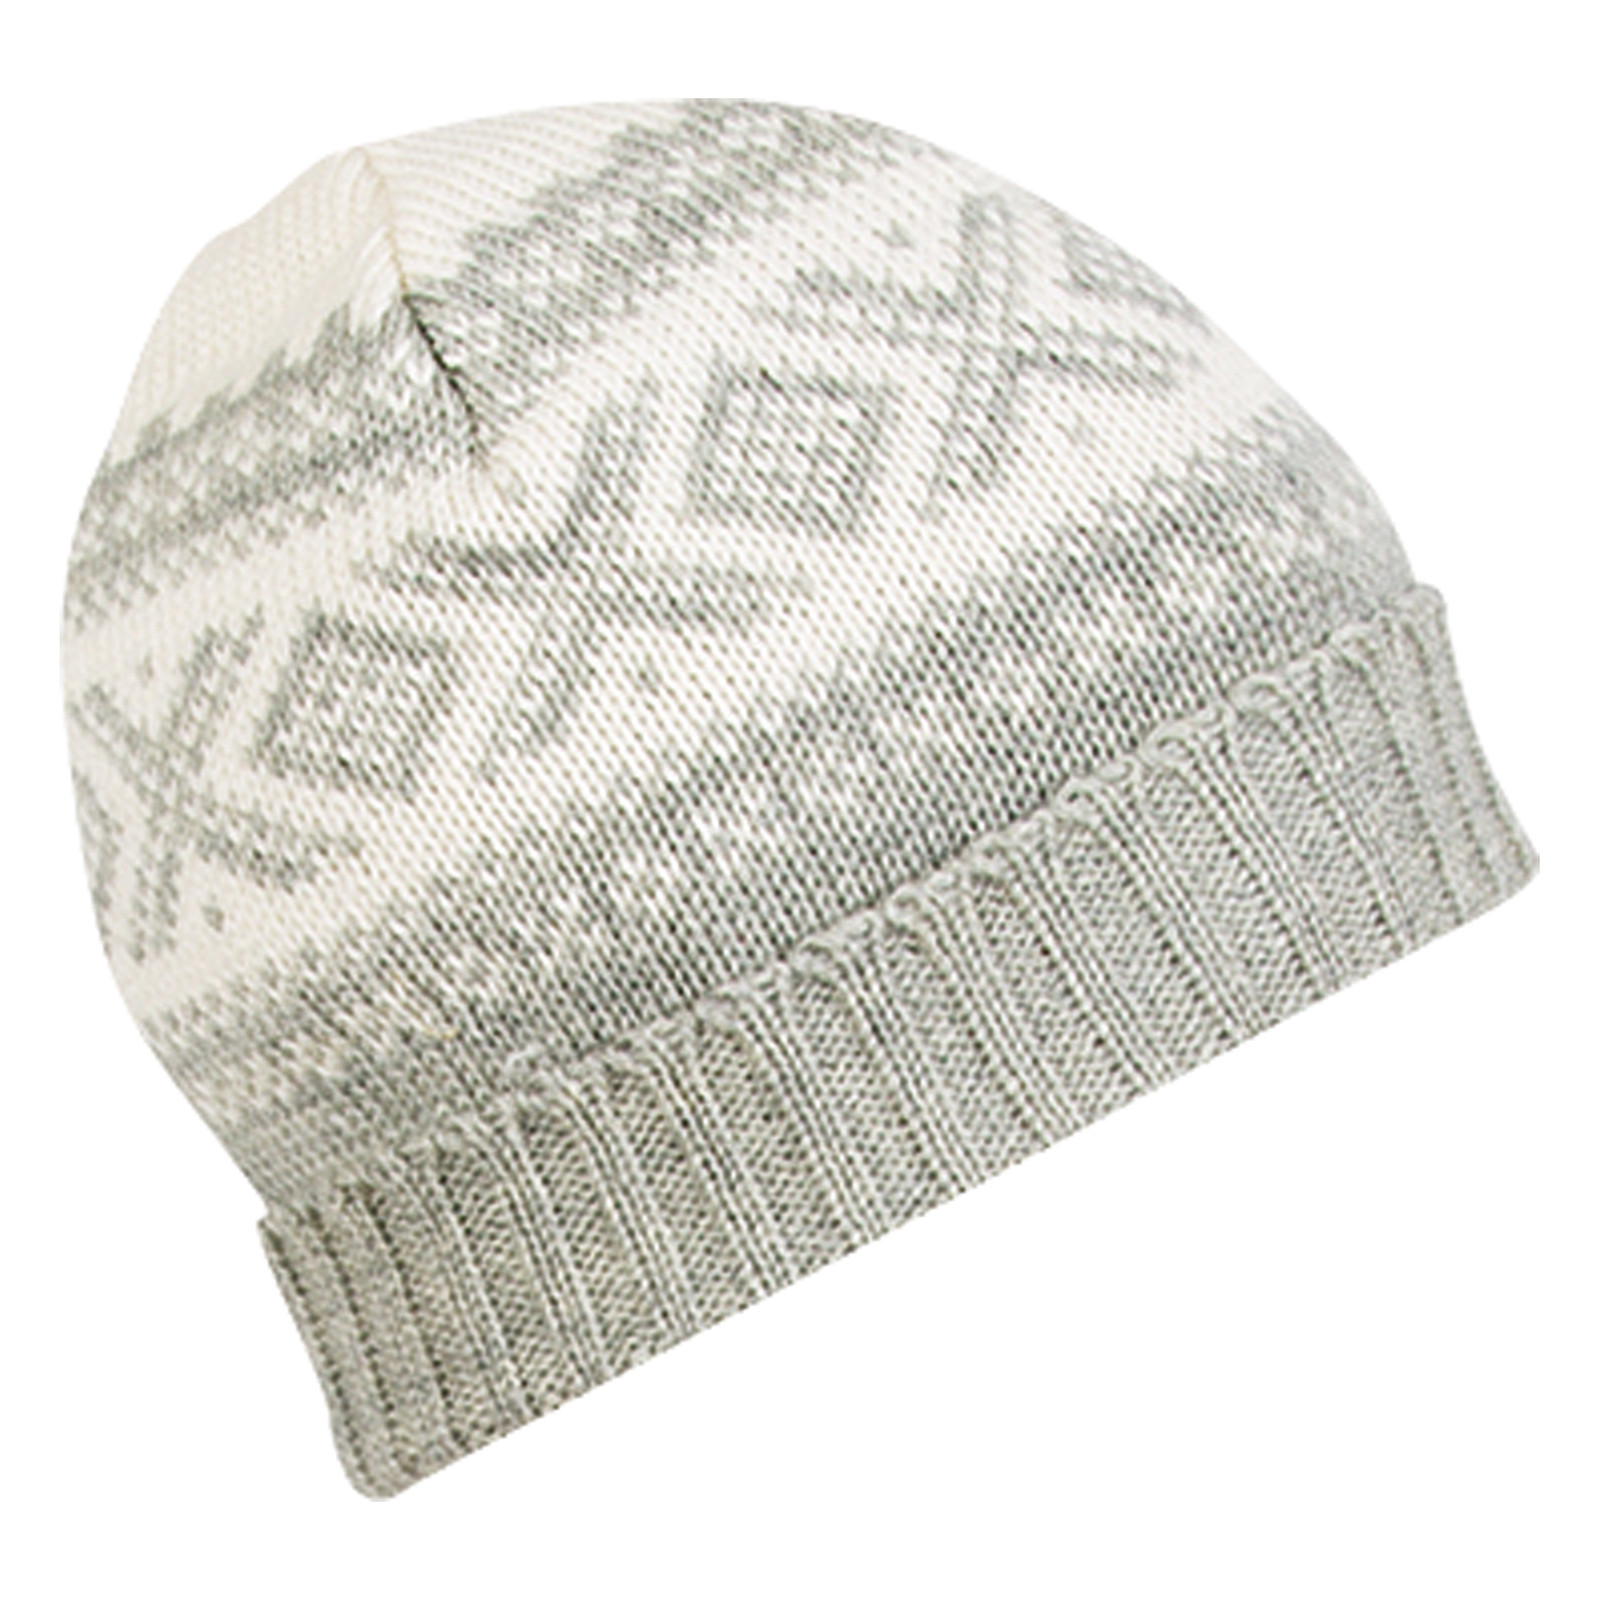 Dale of Norway Cortina Unisex Hat in Off White/Light Charcoal, 42261-E